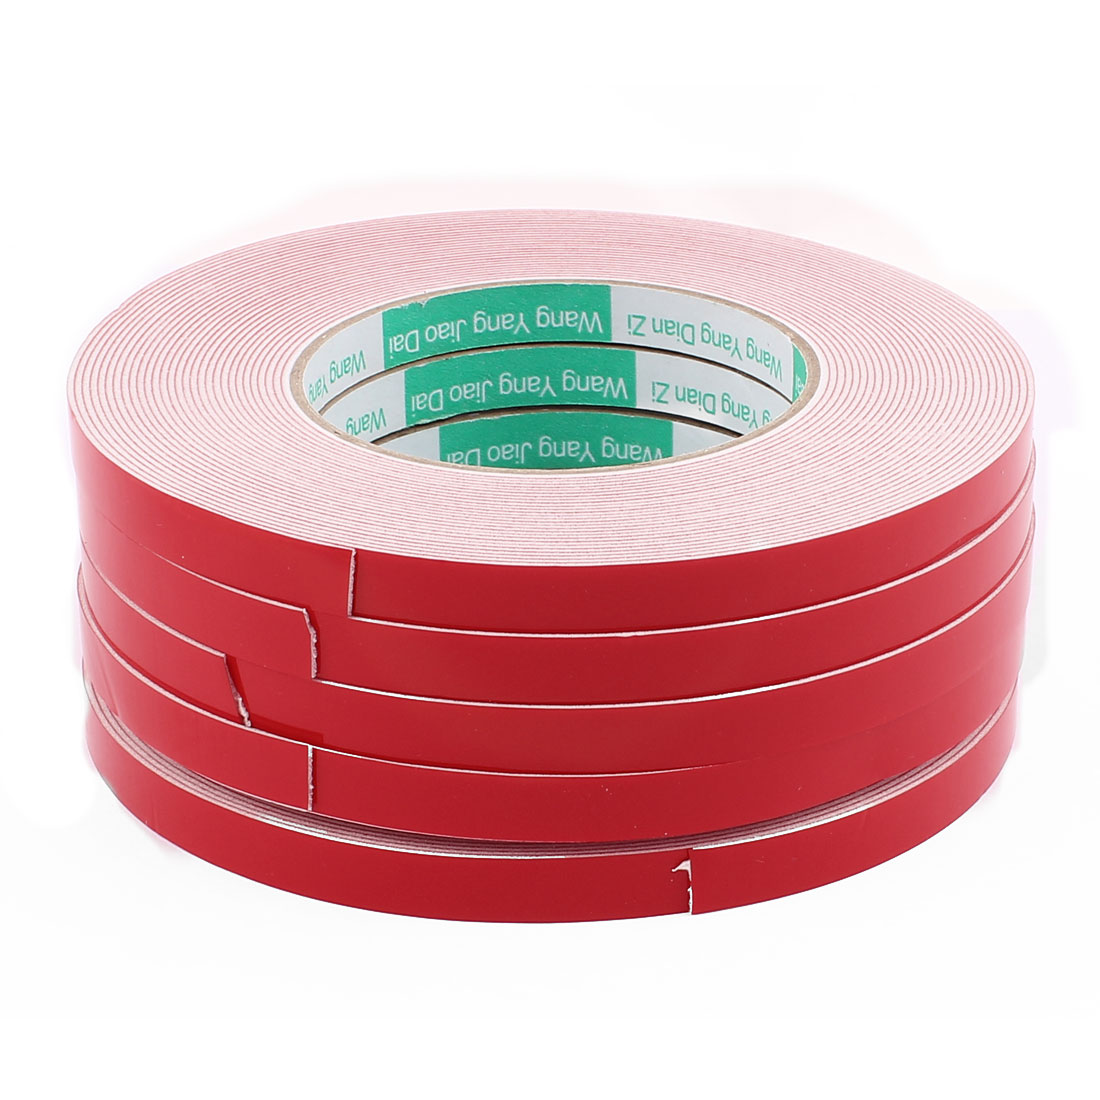 5PCS 10MM Width 10M Long 1MM Thick White Dual Sided Waterproof Sponge Tape for Car